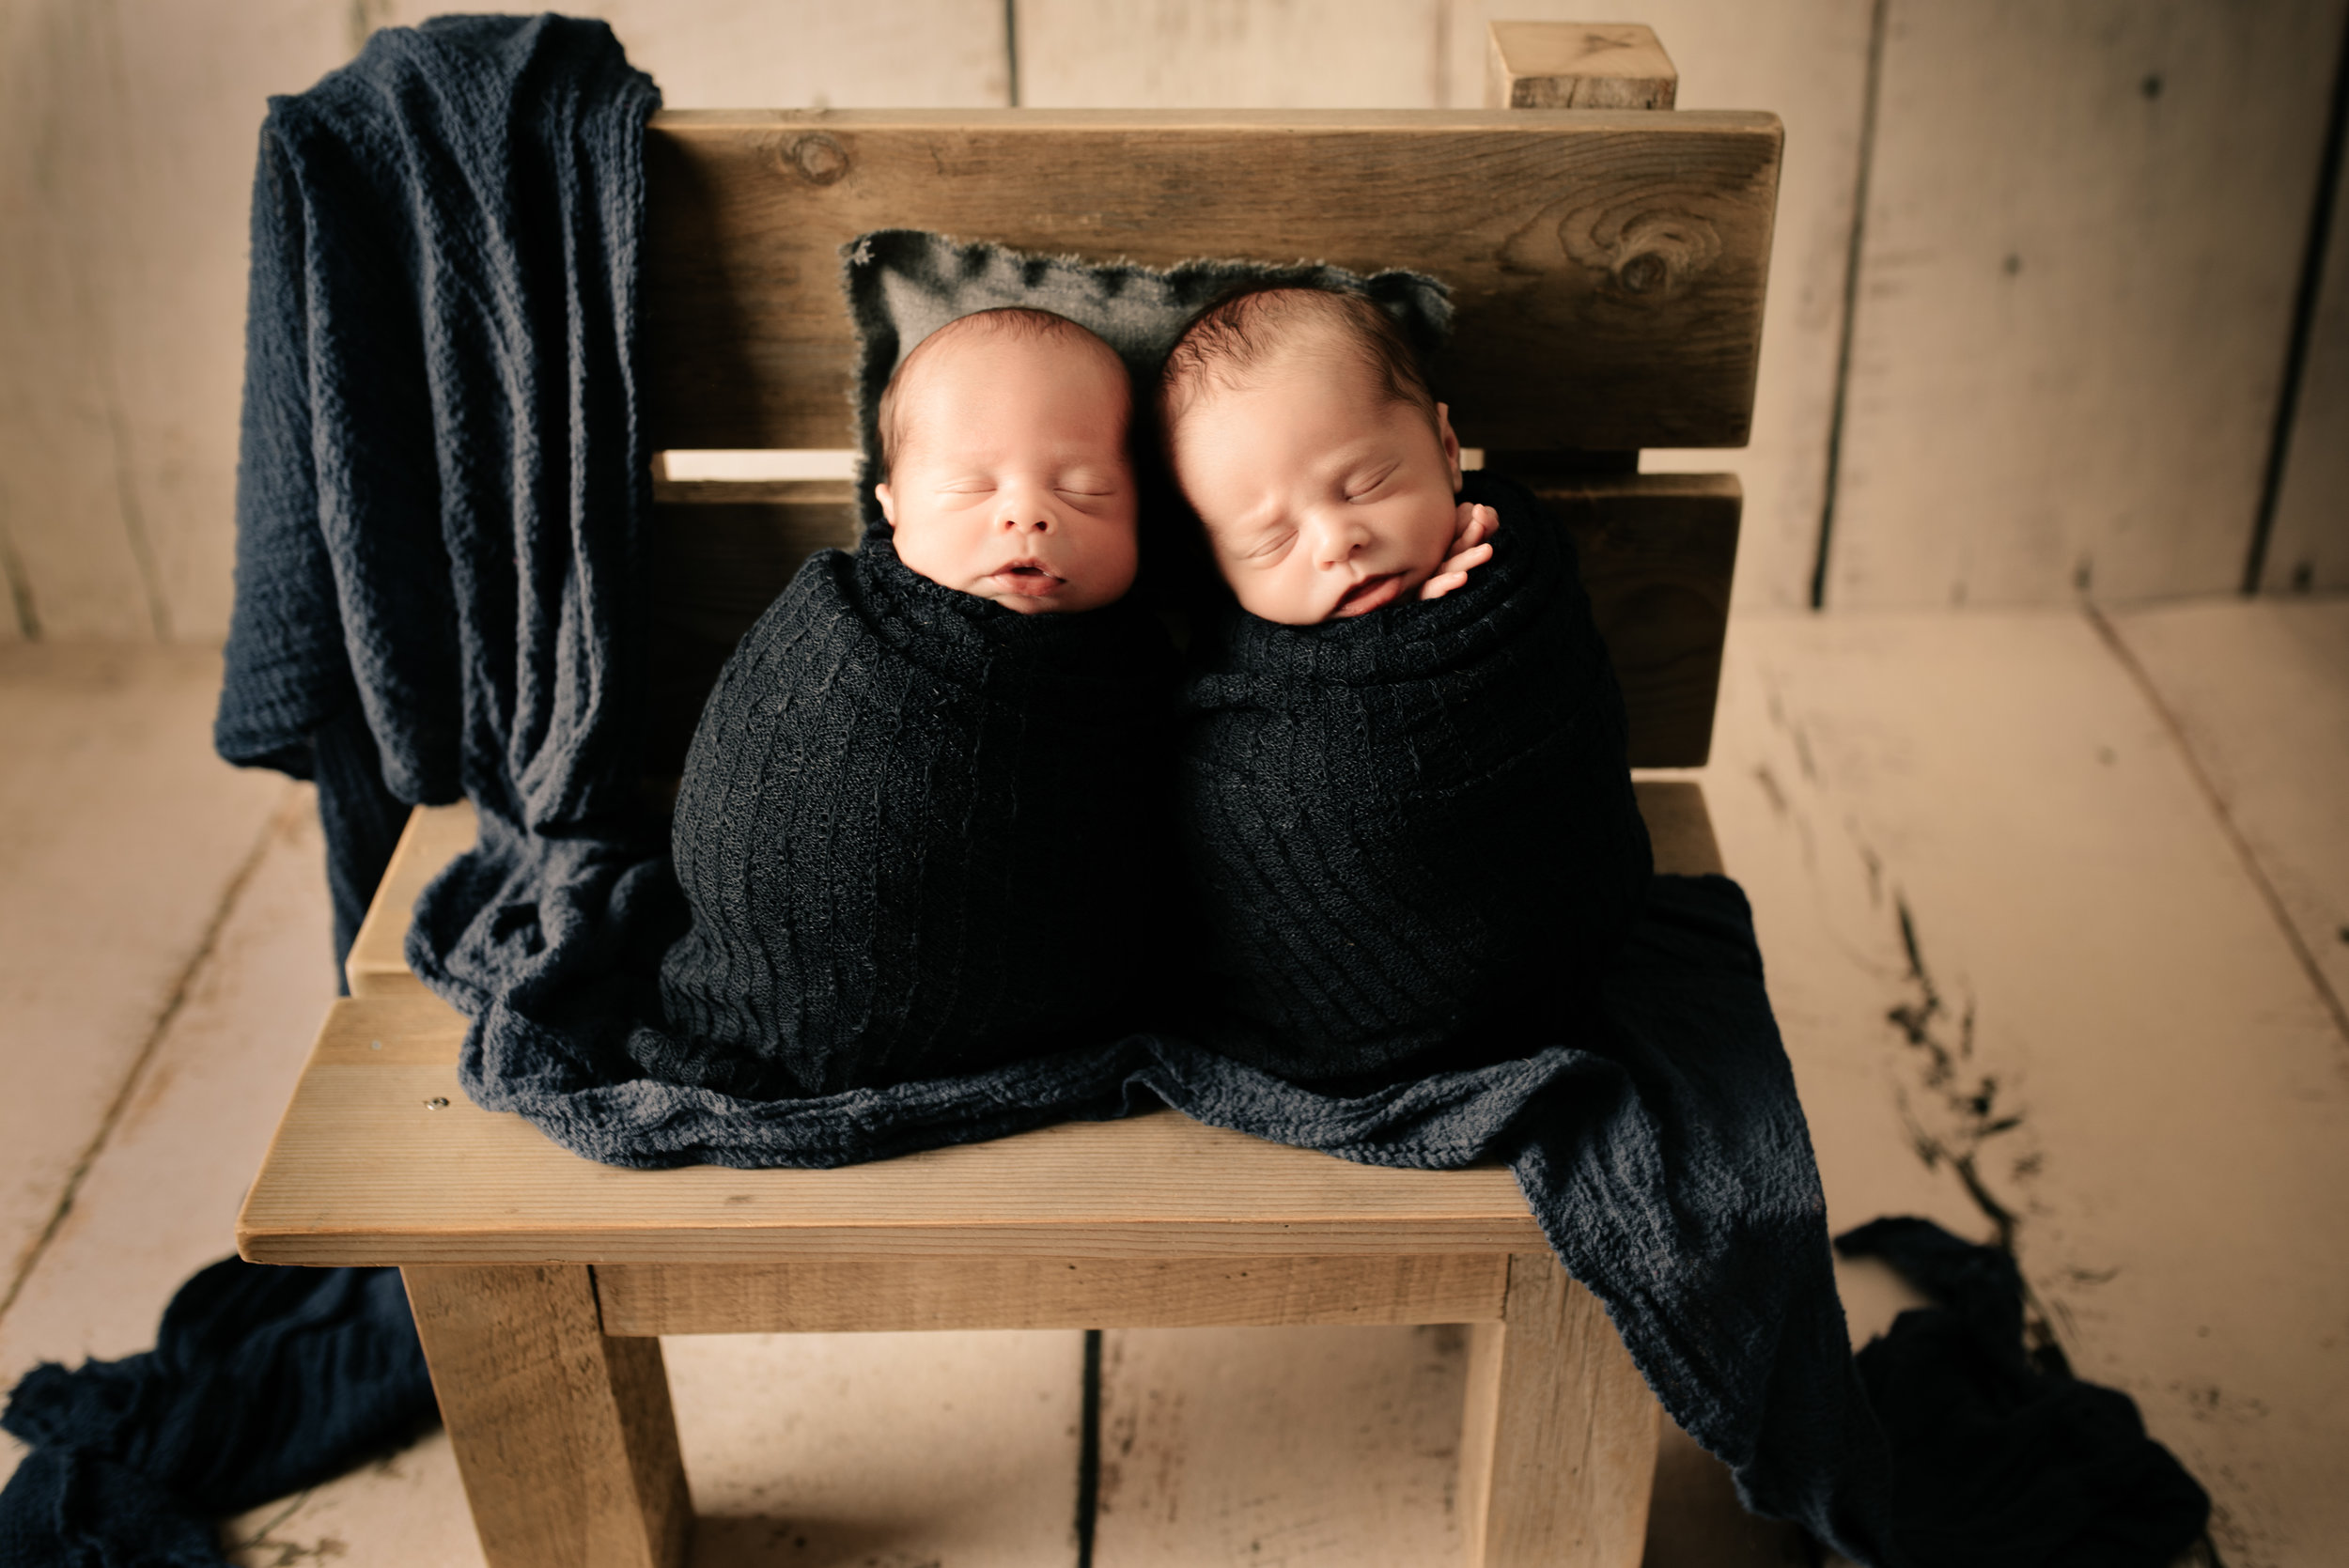 Newborn_John&James_16Days-19.jpg